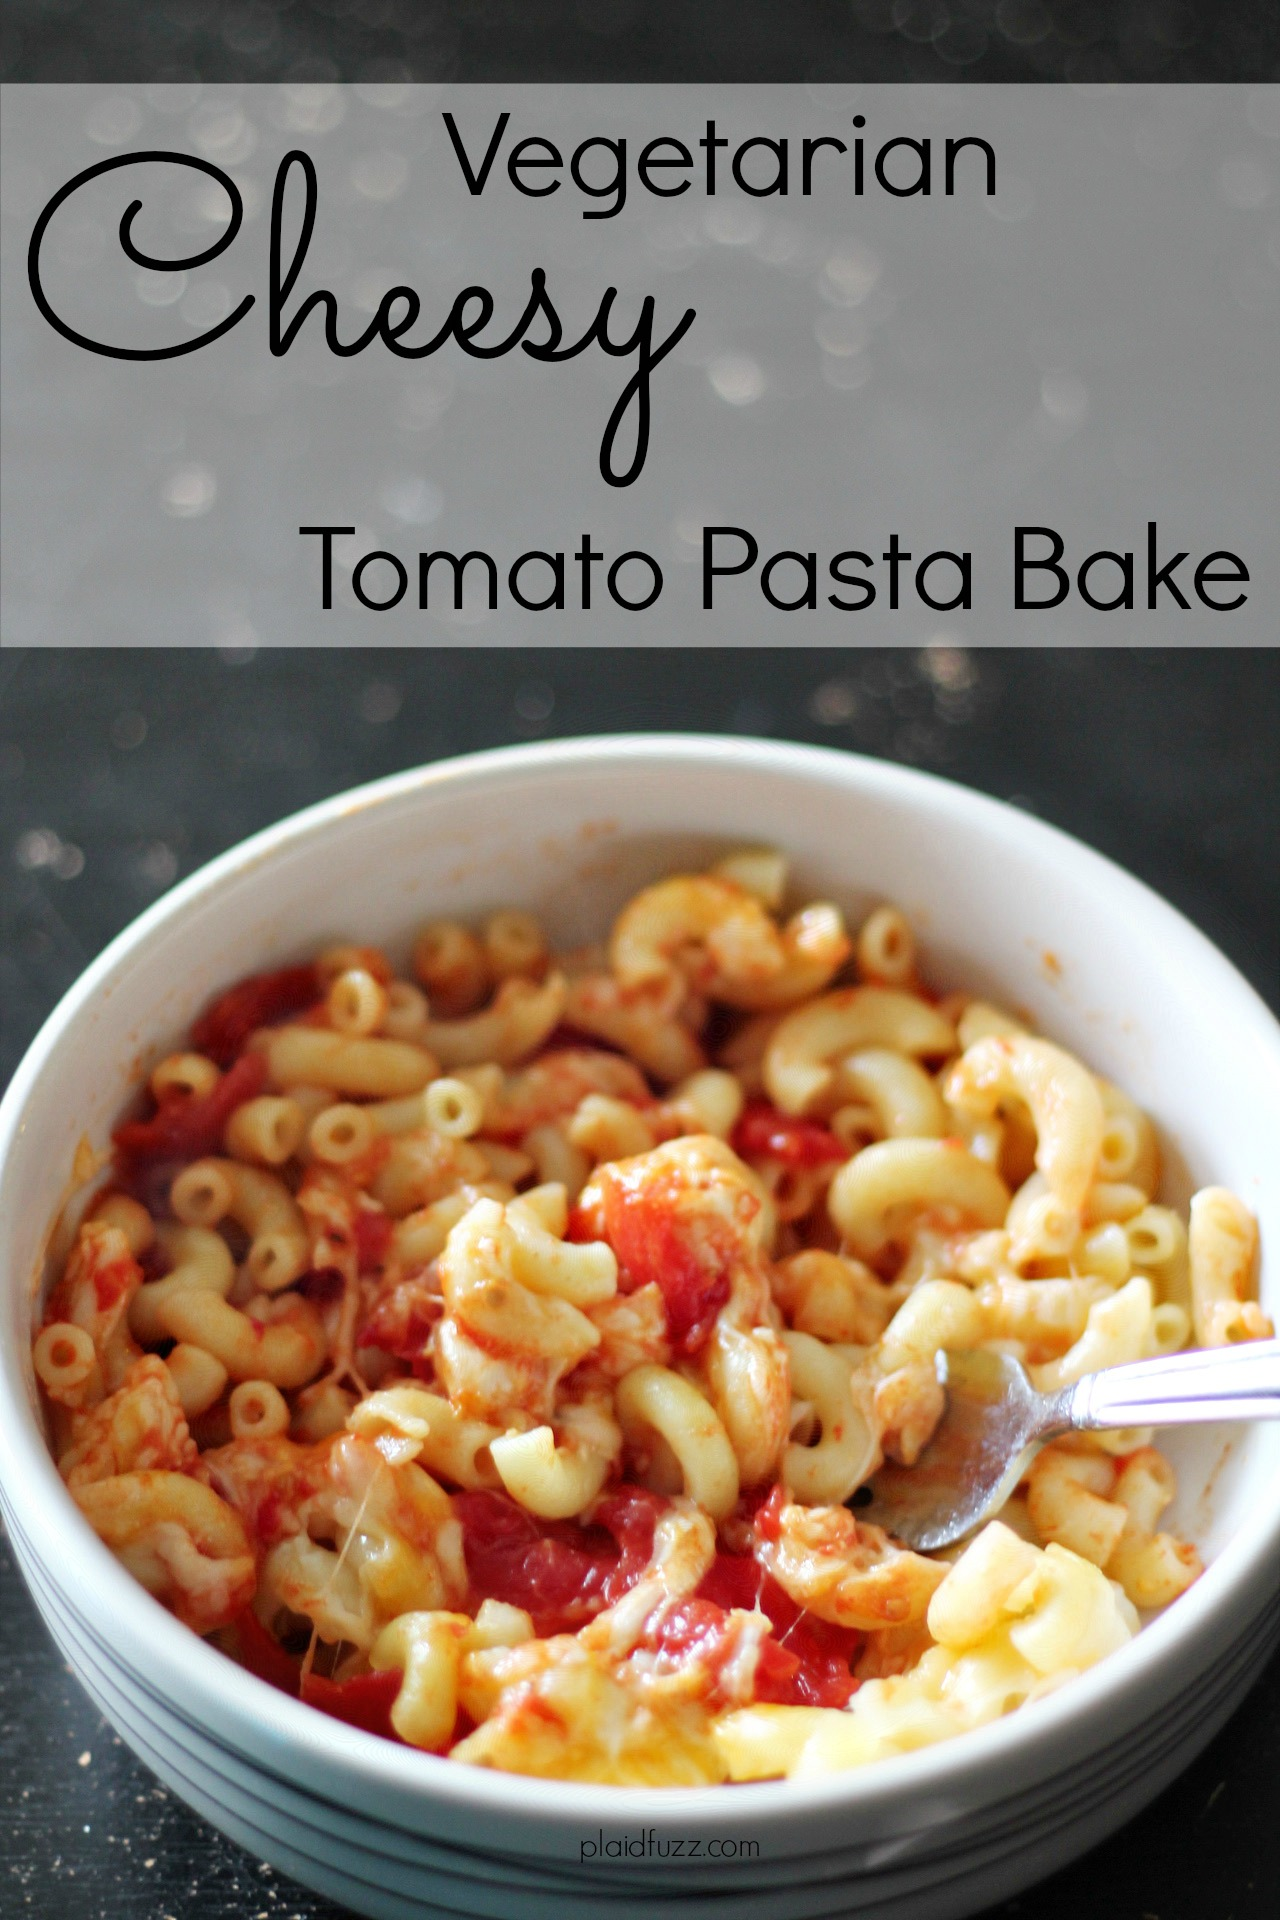 Vegetarian Cheesy Tomato Pasta Bake